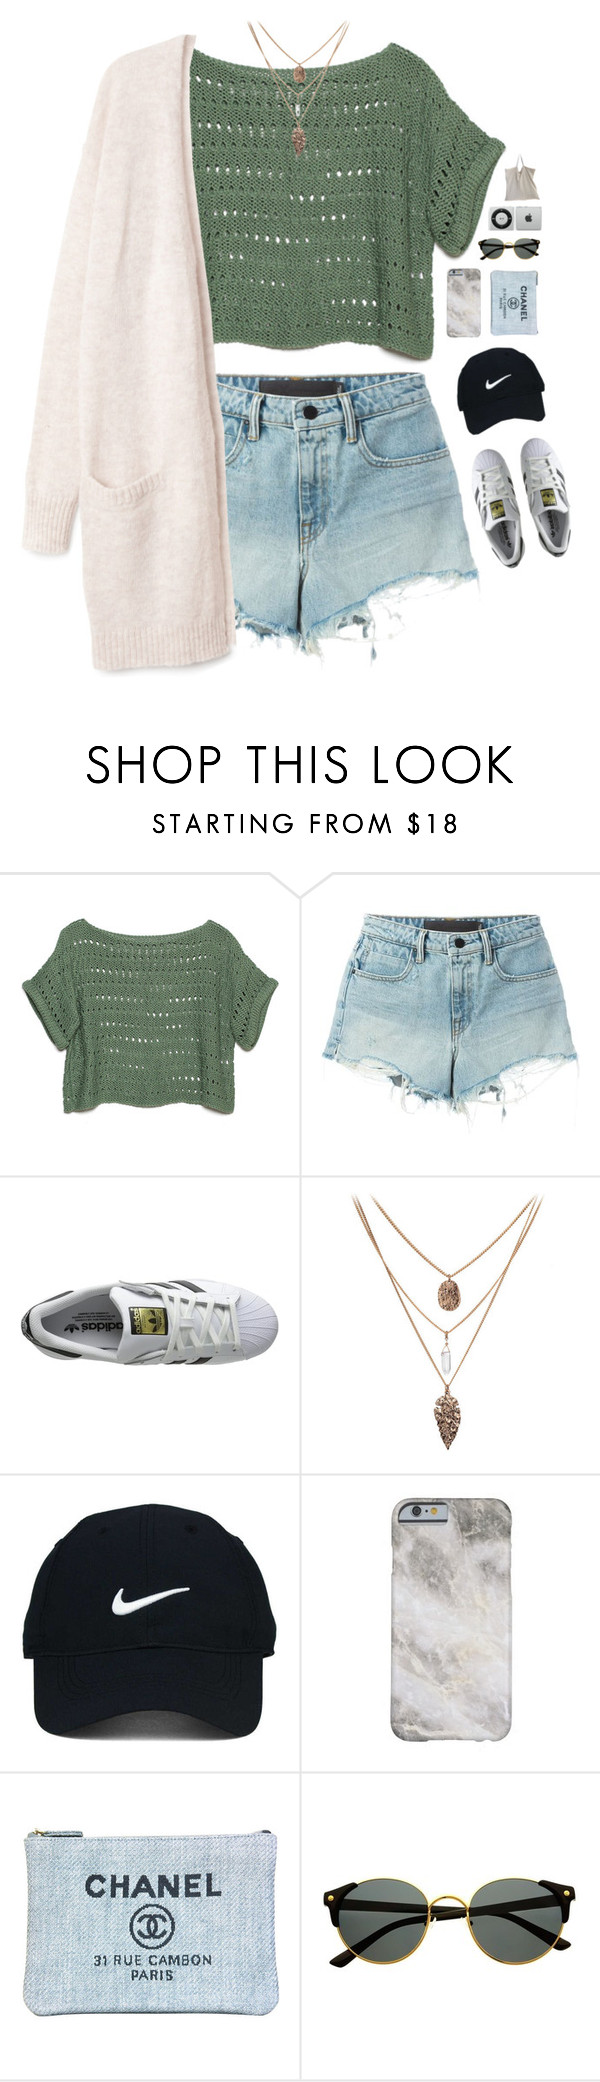 """SR'16🌻"" by messyqueen ❤ liked on Polyvore featuring Alexander Wang, adidas Originals, Nike Golf and Chanel"